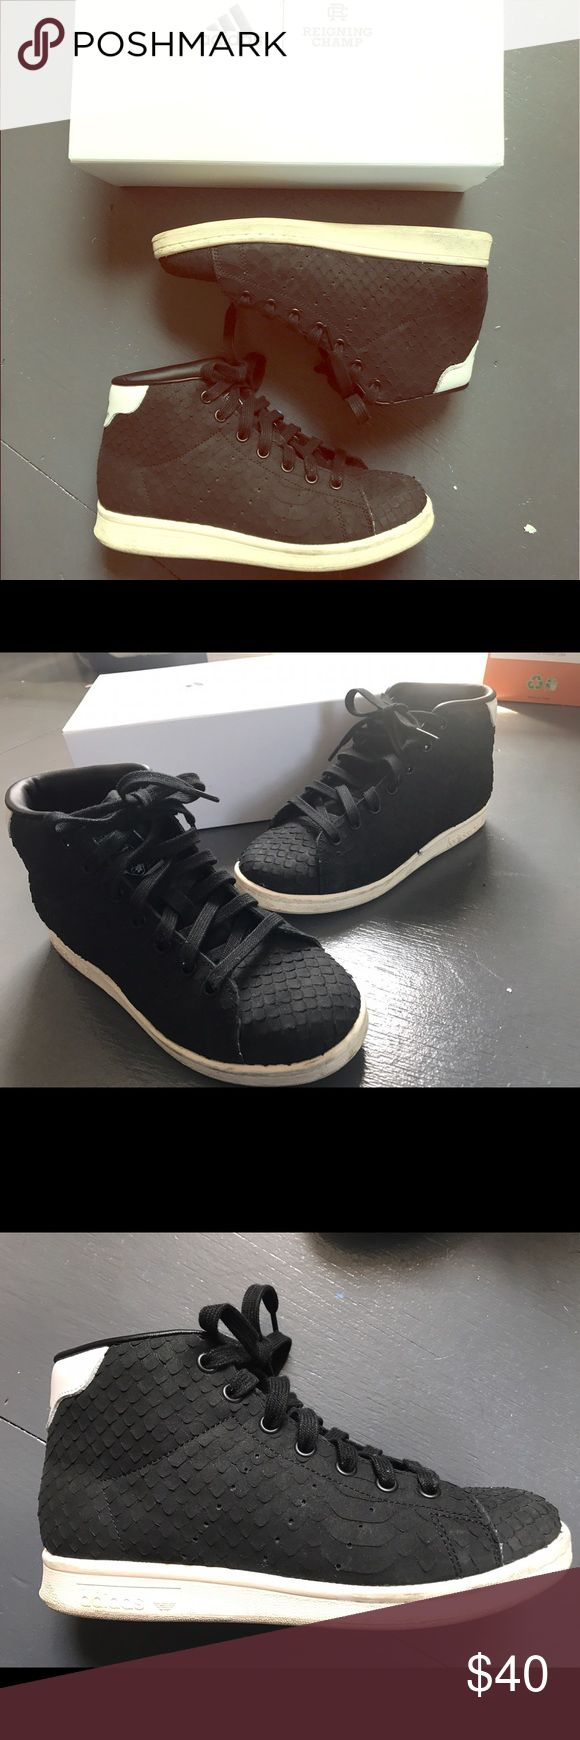 Adidas Women's Stan Smith Sneakers Worn twice Adidas limited edition Stan Smith mid-top sneakers. Black suede textured exterior with white soles. Bought in December 2016. Adidas Shoes Sneakers